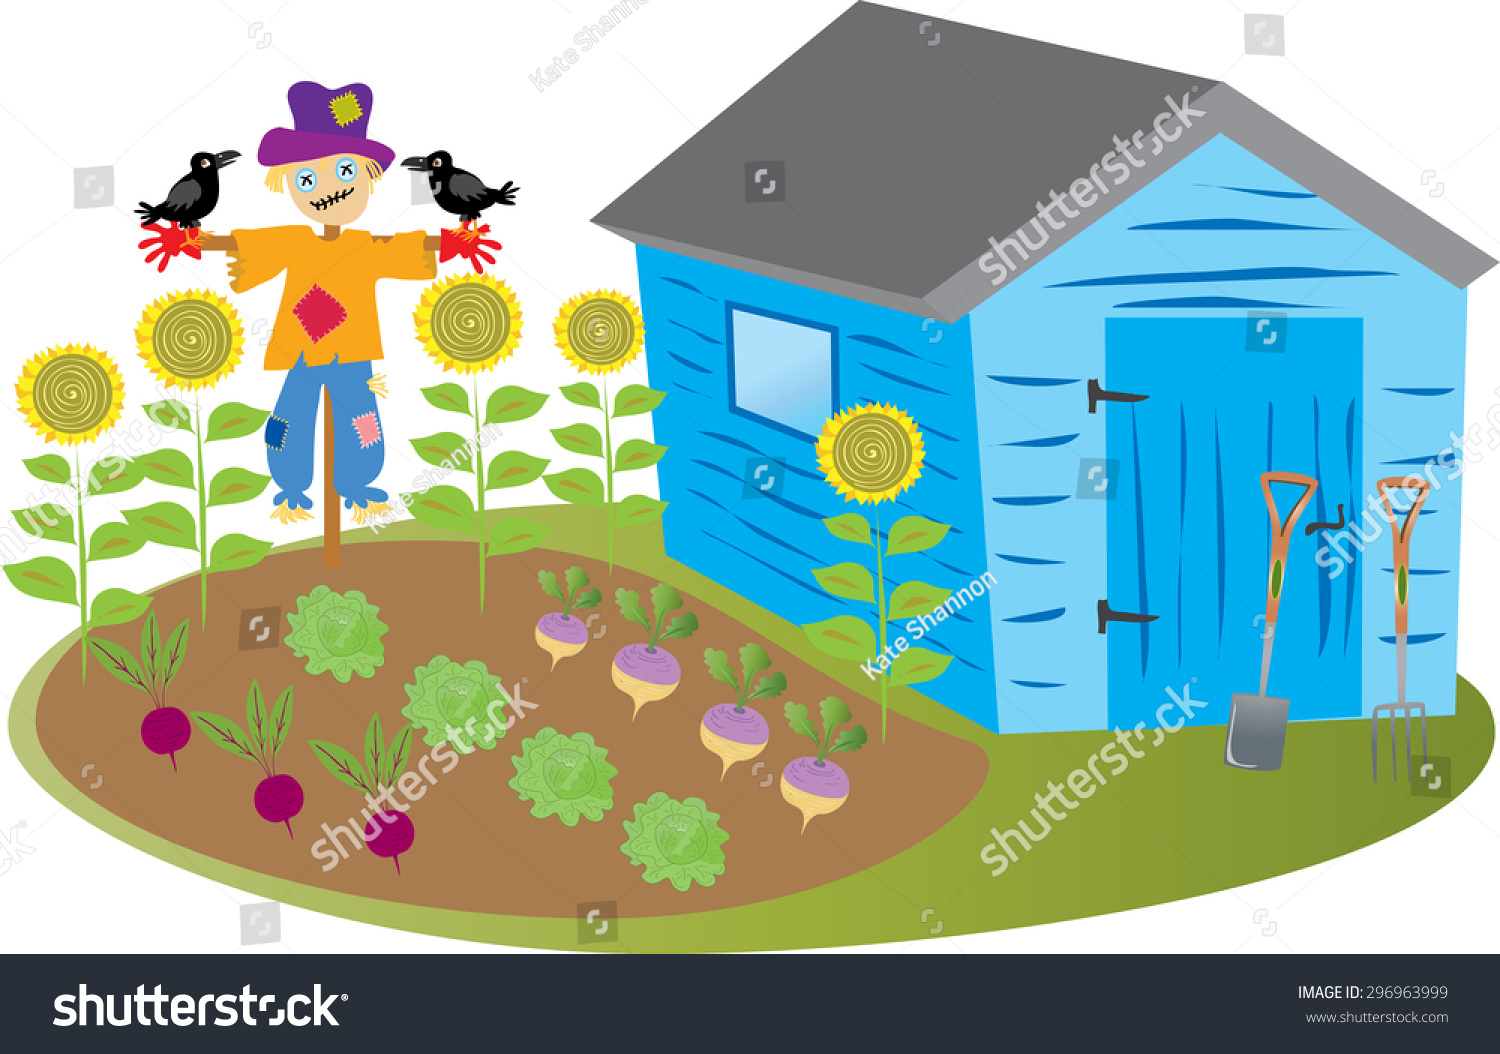 Vegetable garden cartoon - A Cartoon Garden Shed With A Vegetable Garden And A Scarecrow With Crows And Some